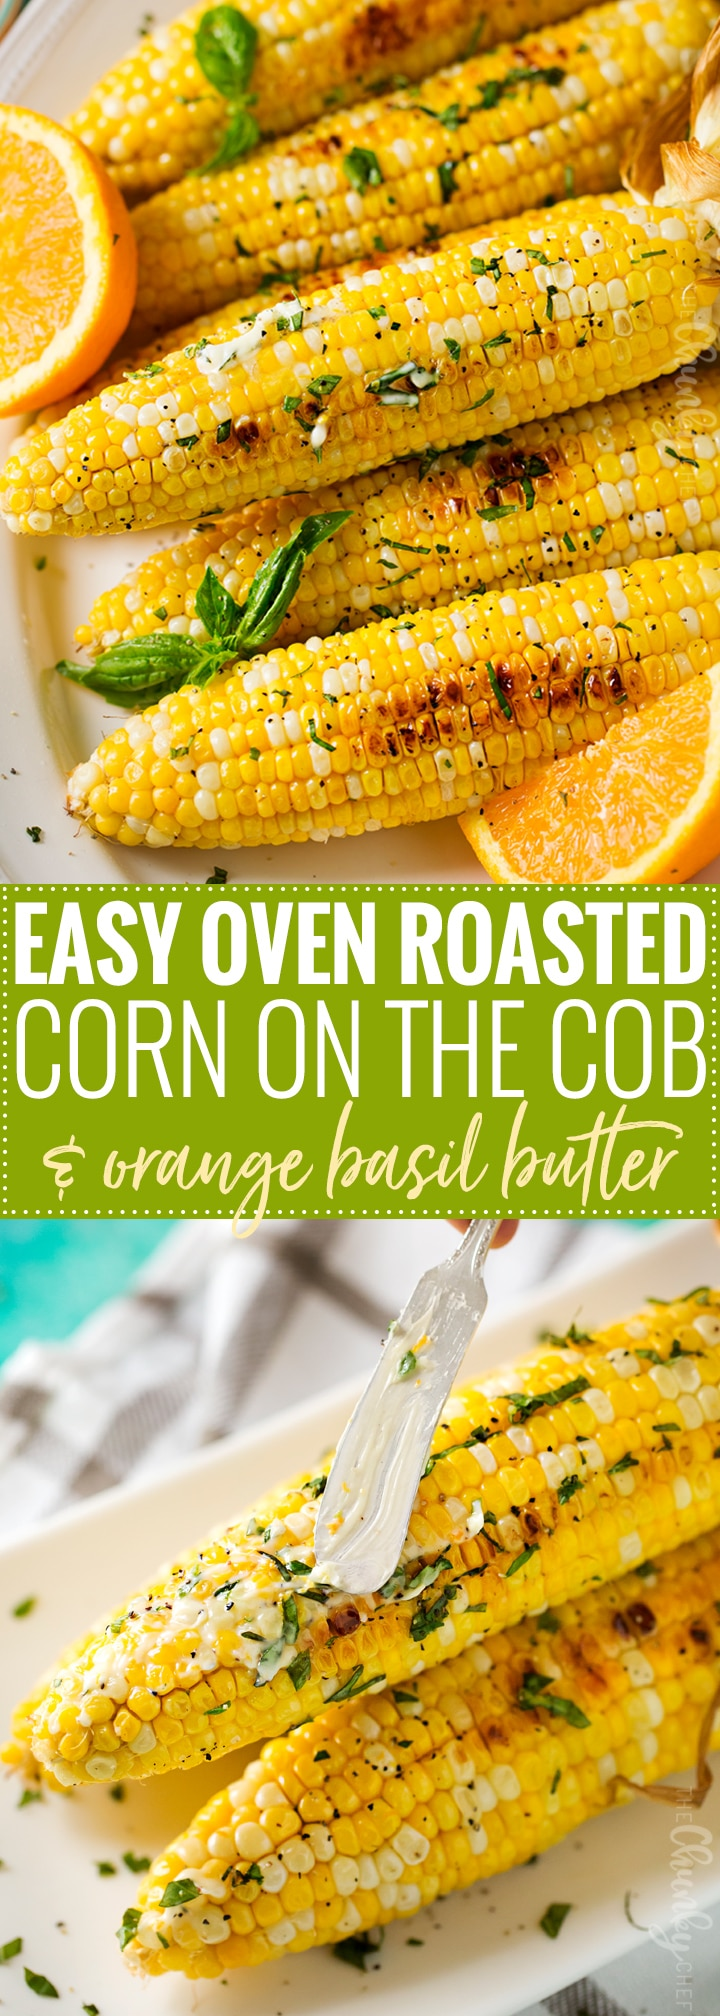 Oven Roasted Corn on the Cob   This foolproof method for cooking corn on the cob is easy, perfect for any kind of weather, and produces the juiciest, perfectly cooked ears of corn ever!   http://thechunkychef.com